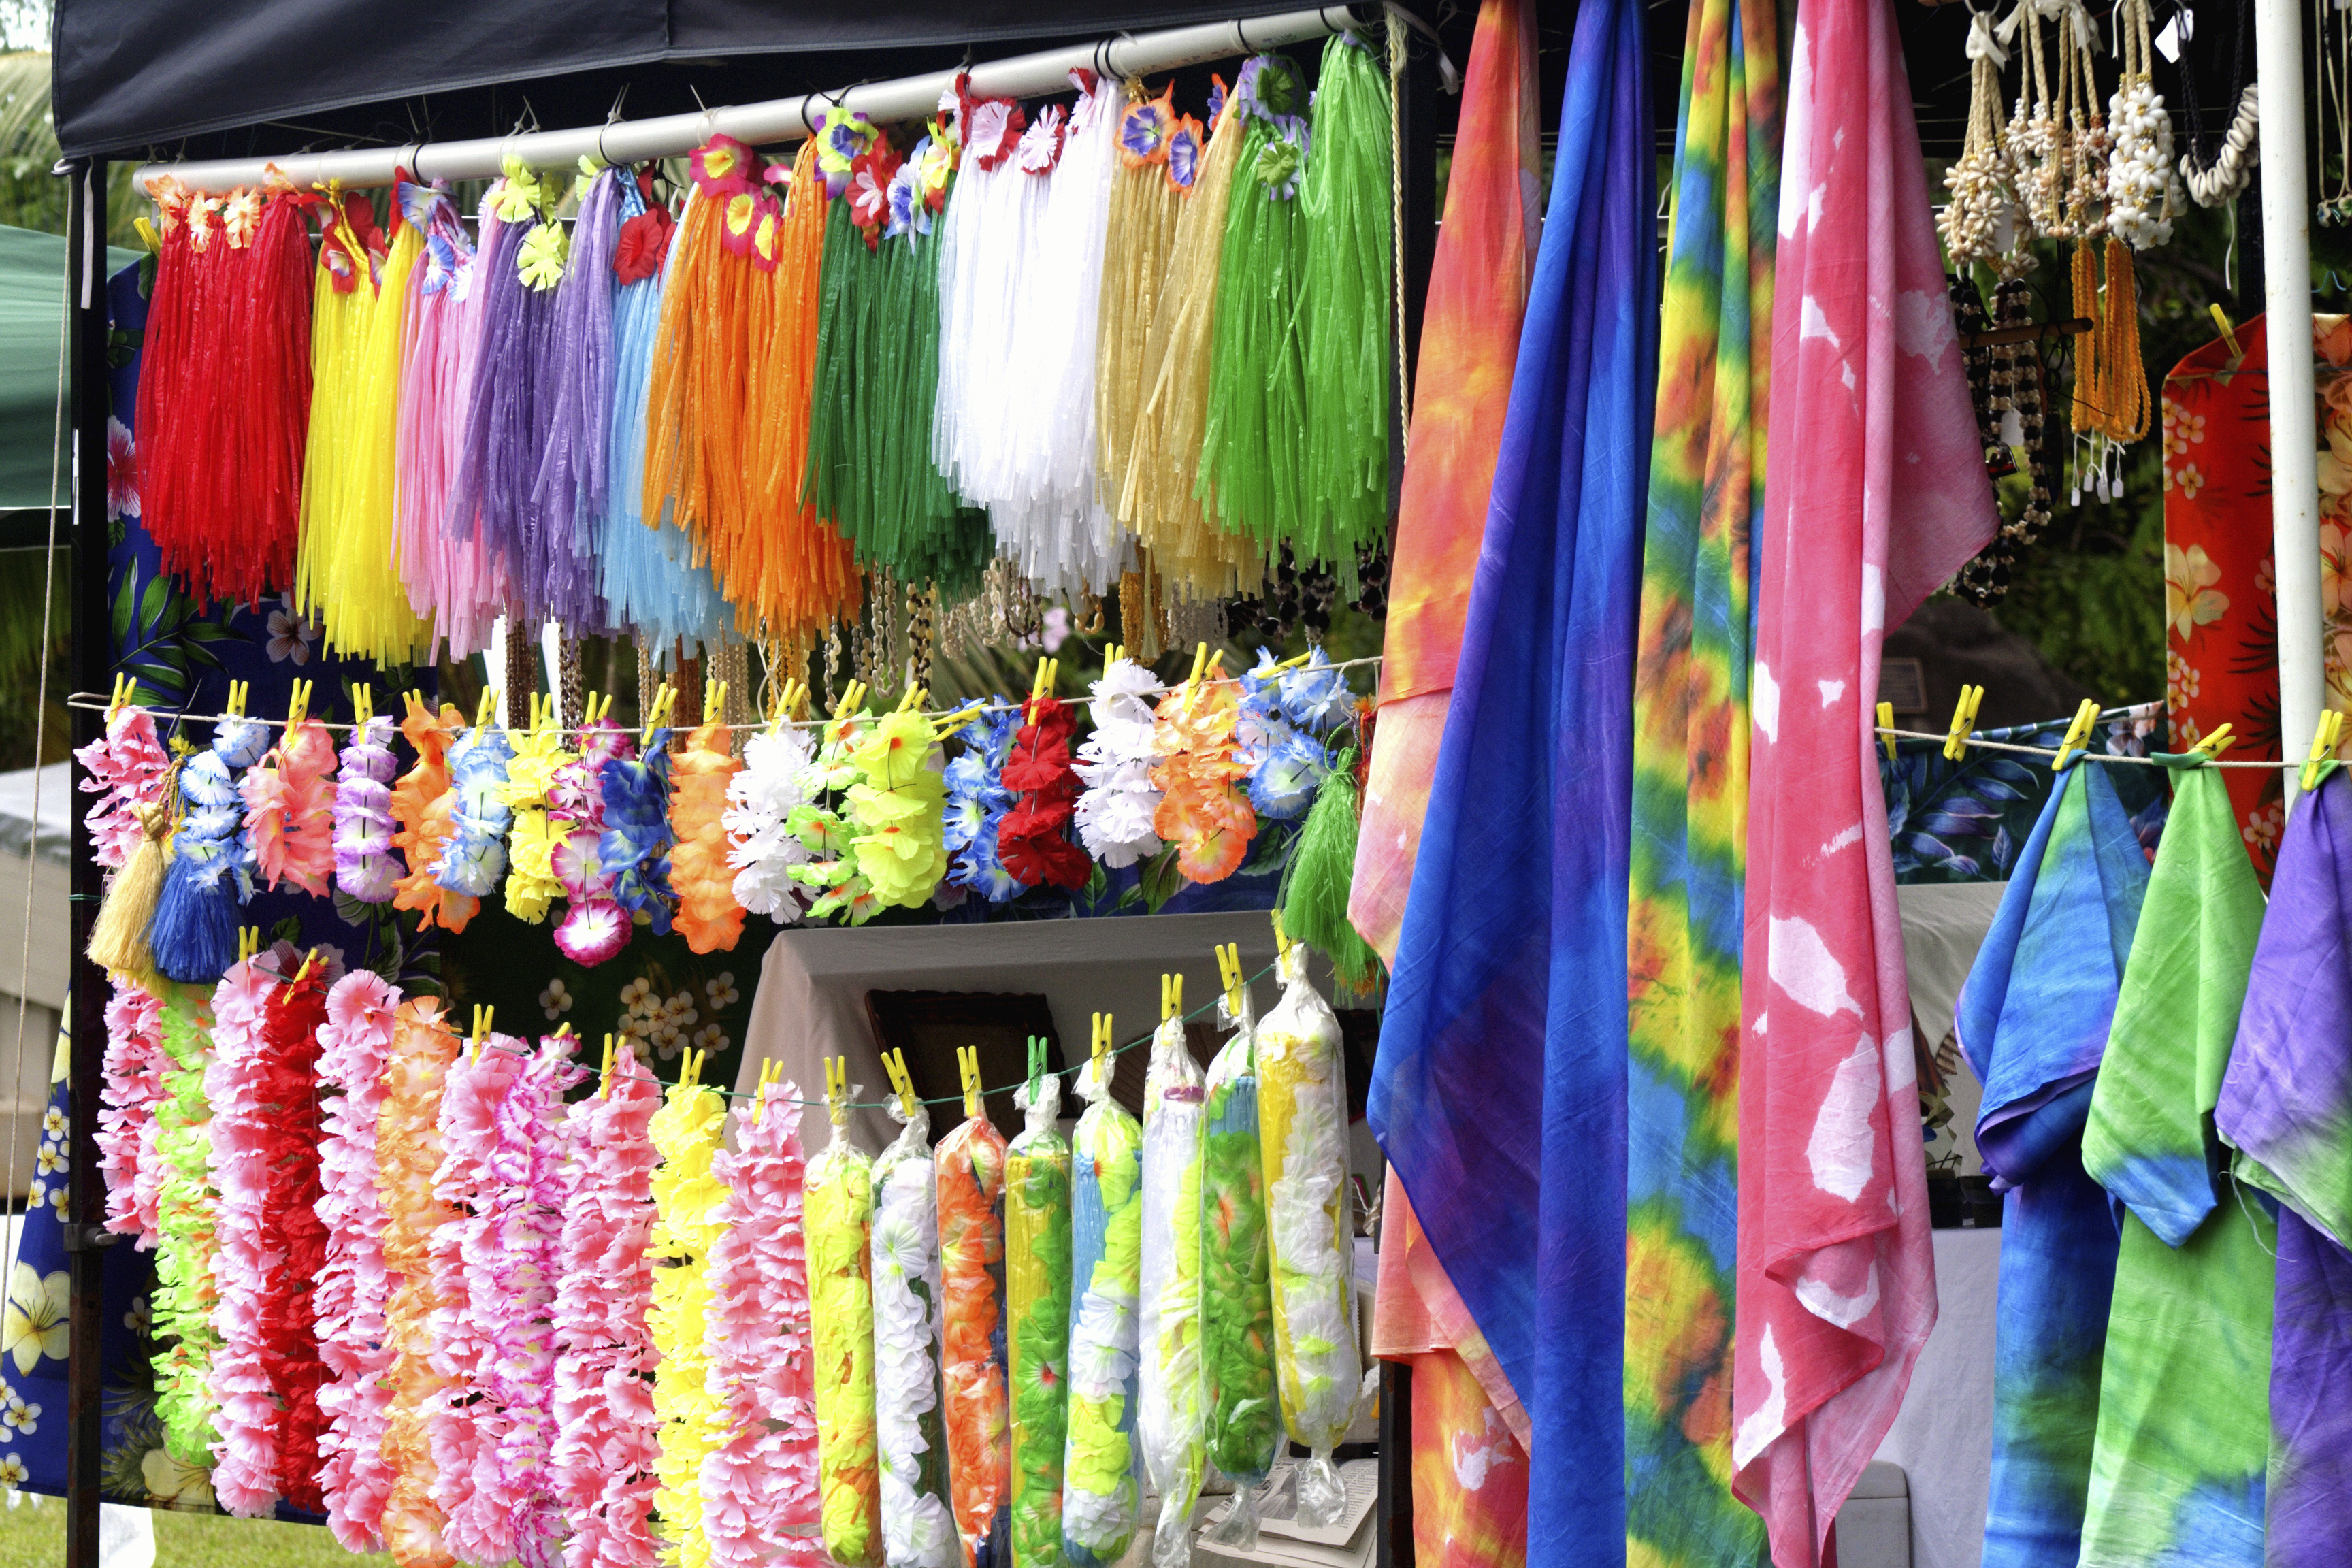 Markets in the Cook Islands